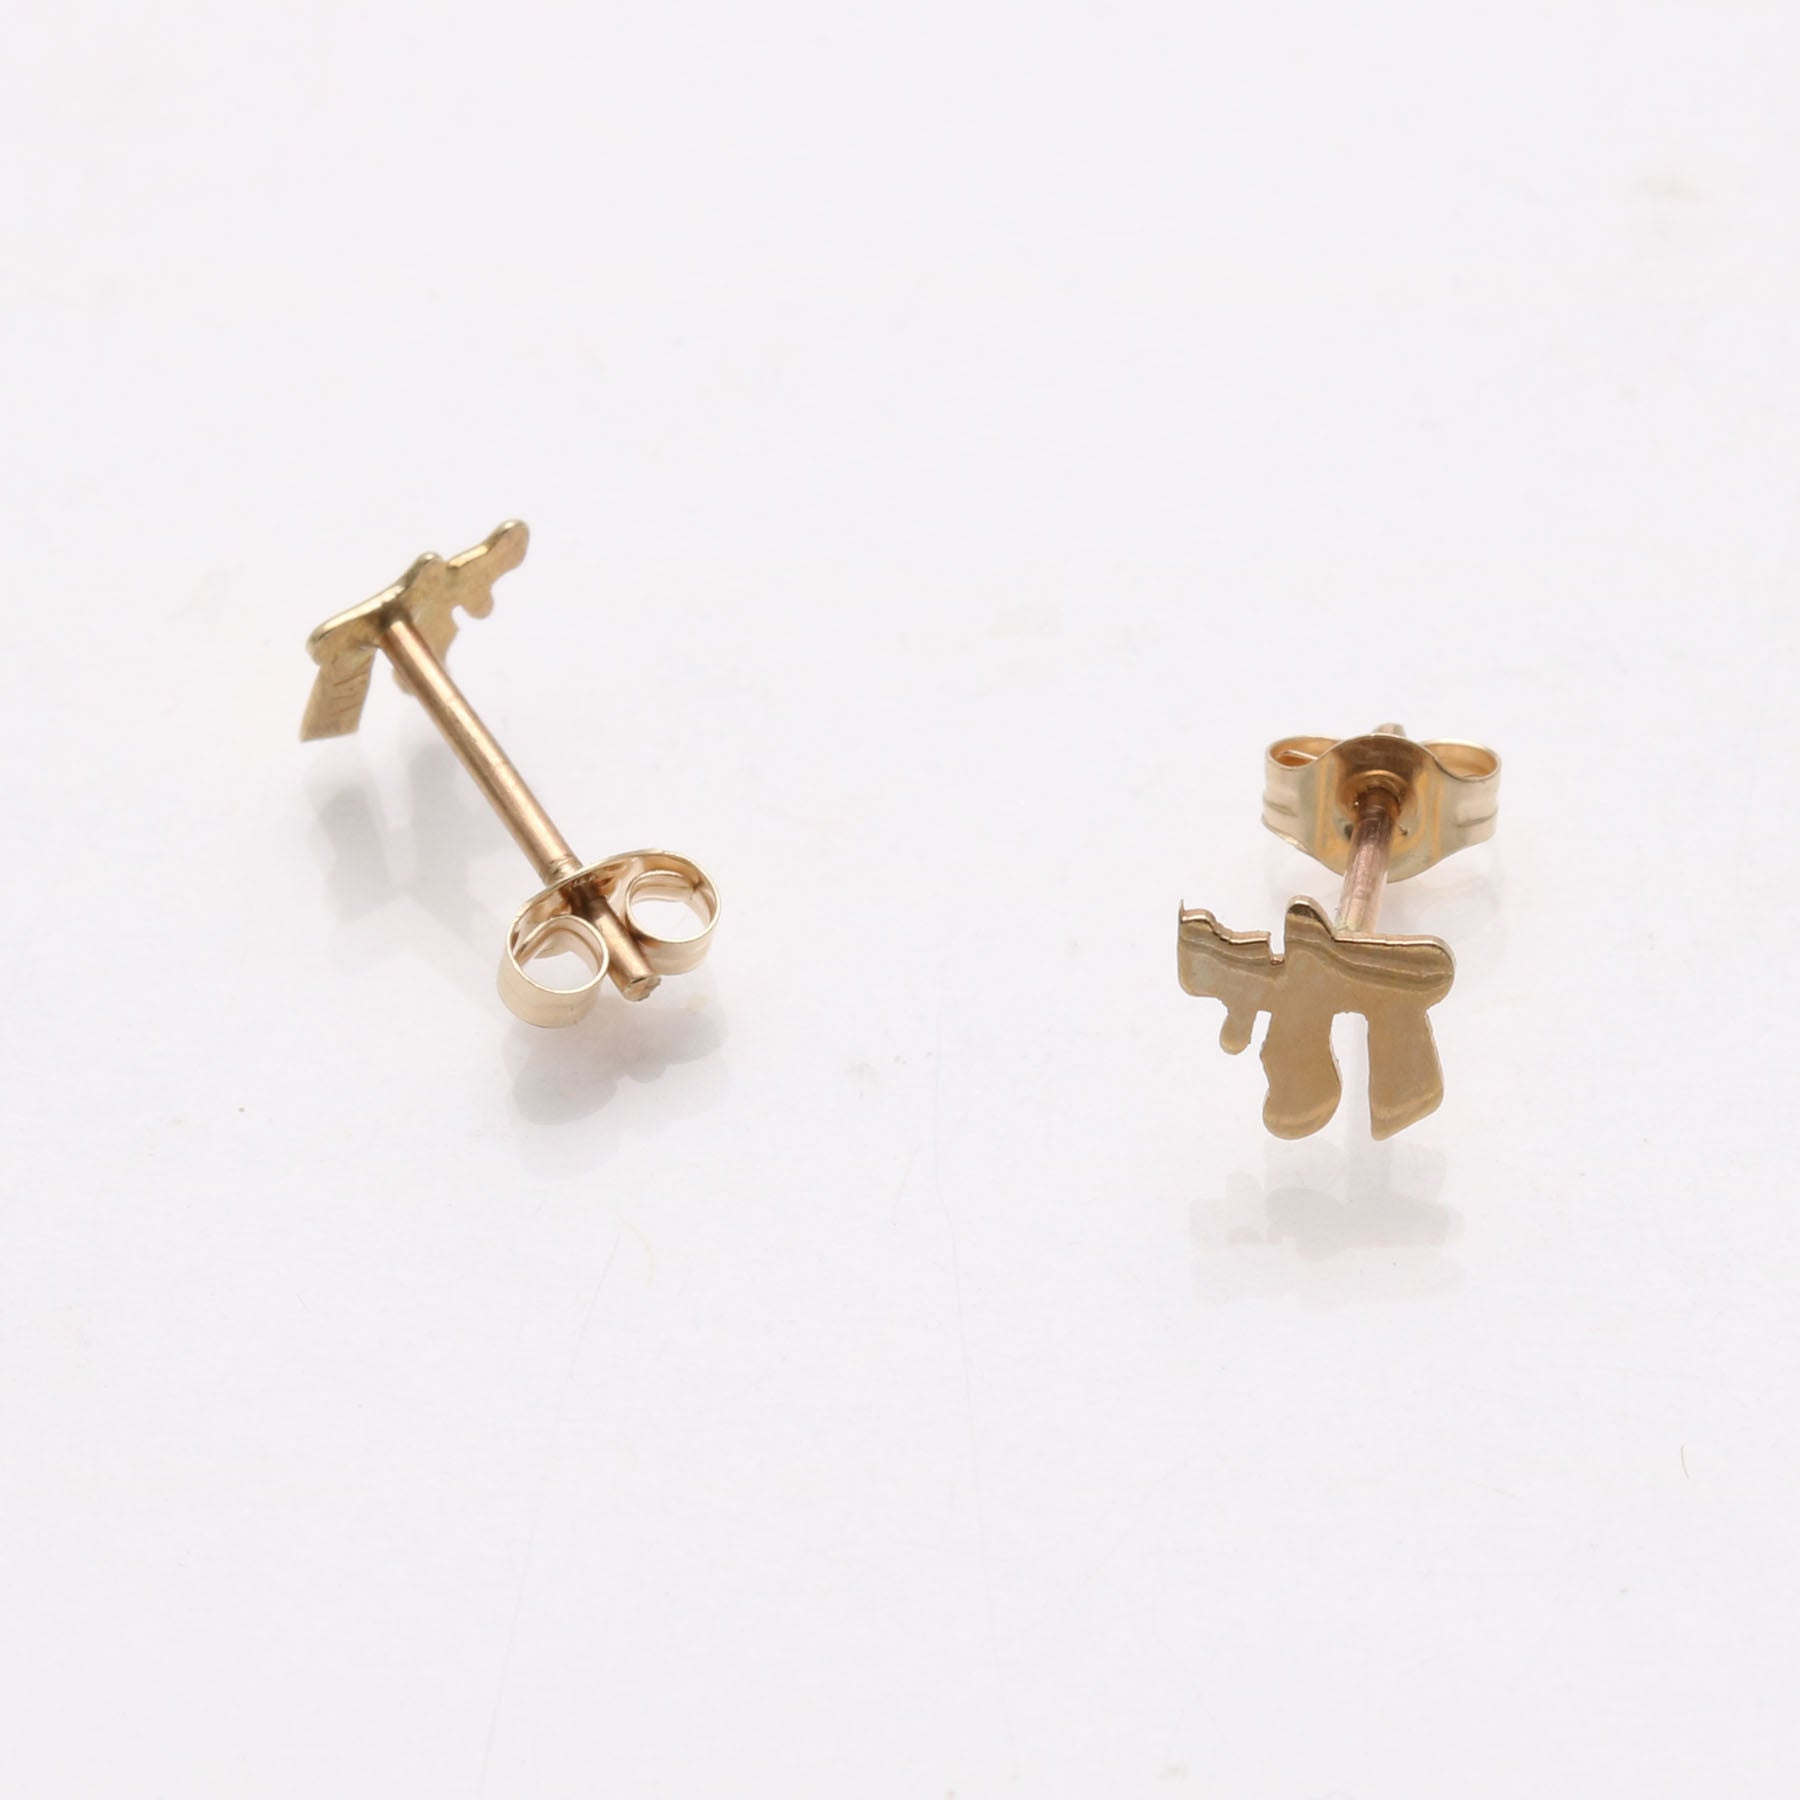 gold cross caymancode rose small stud earrings diamond